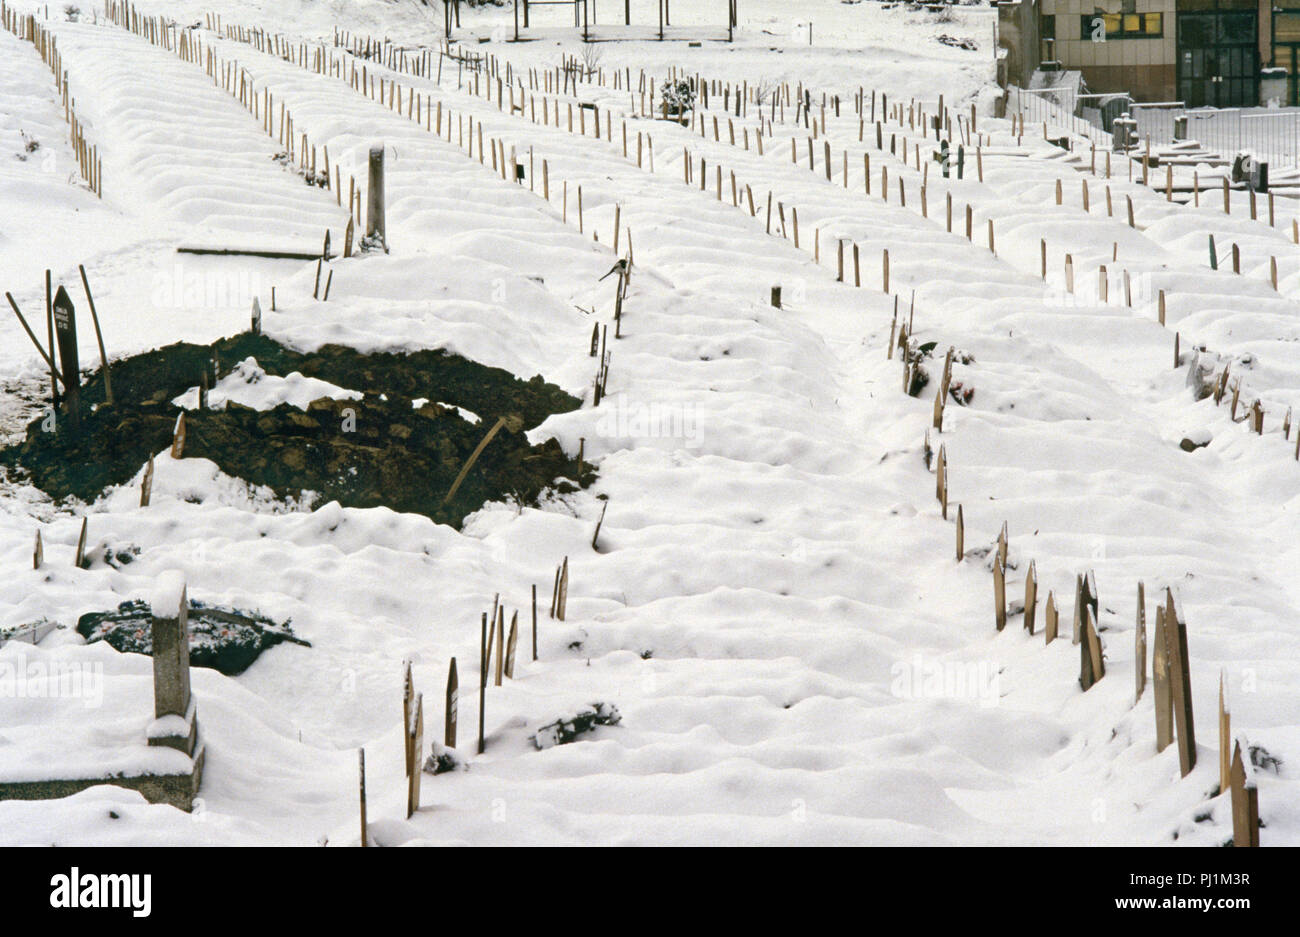 4th March 1993 A view of part of the Lion Cemetery in Sarajevo, just below the Kosevo Hospital: grave-diggers' shovels stand embedded in freshly dug earth among dozens of regimented wooden grave-markers in the snow. They bear the names of Muslim victims of the Siege of Sarajevo. - Stock Image